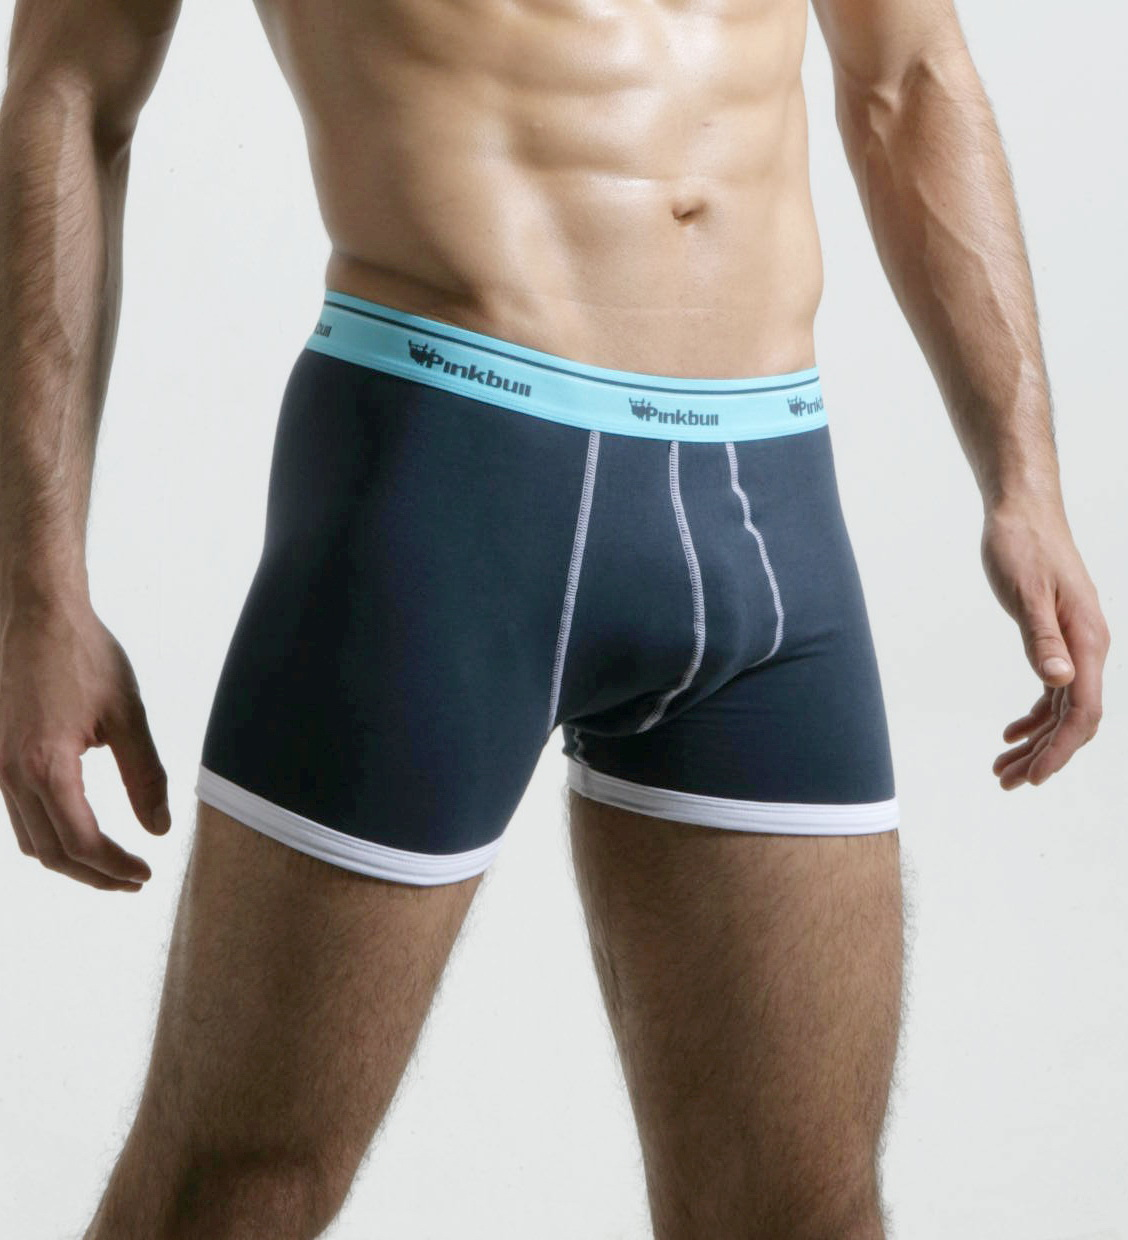 Shop men's underwear & boxers from Under Armour. Underwear designed with anti-odor and moisture wicking technology to keep you comfortable all day.